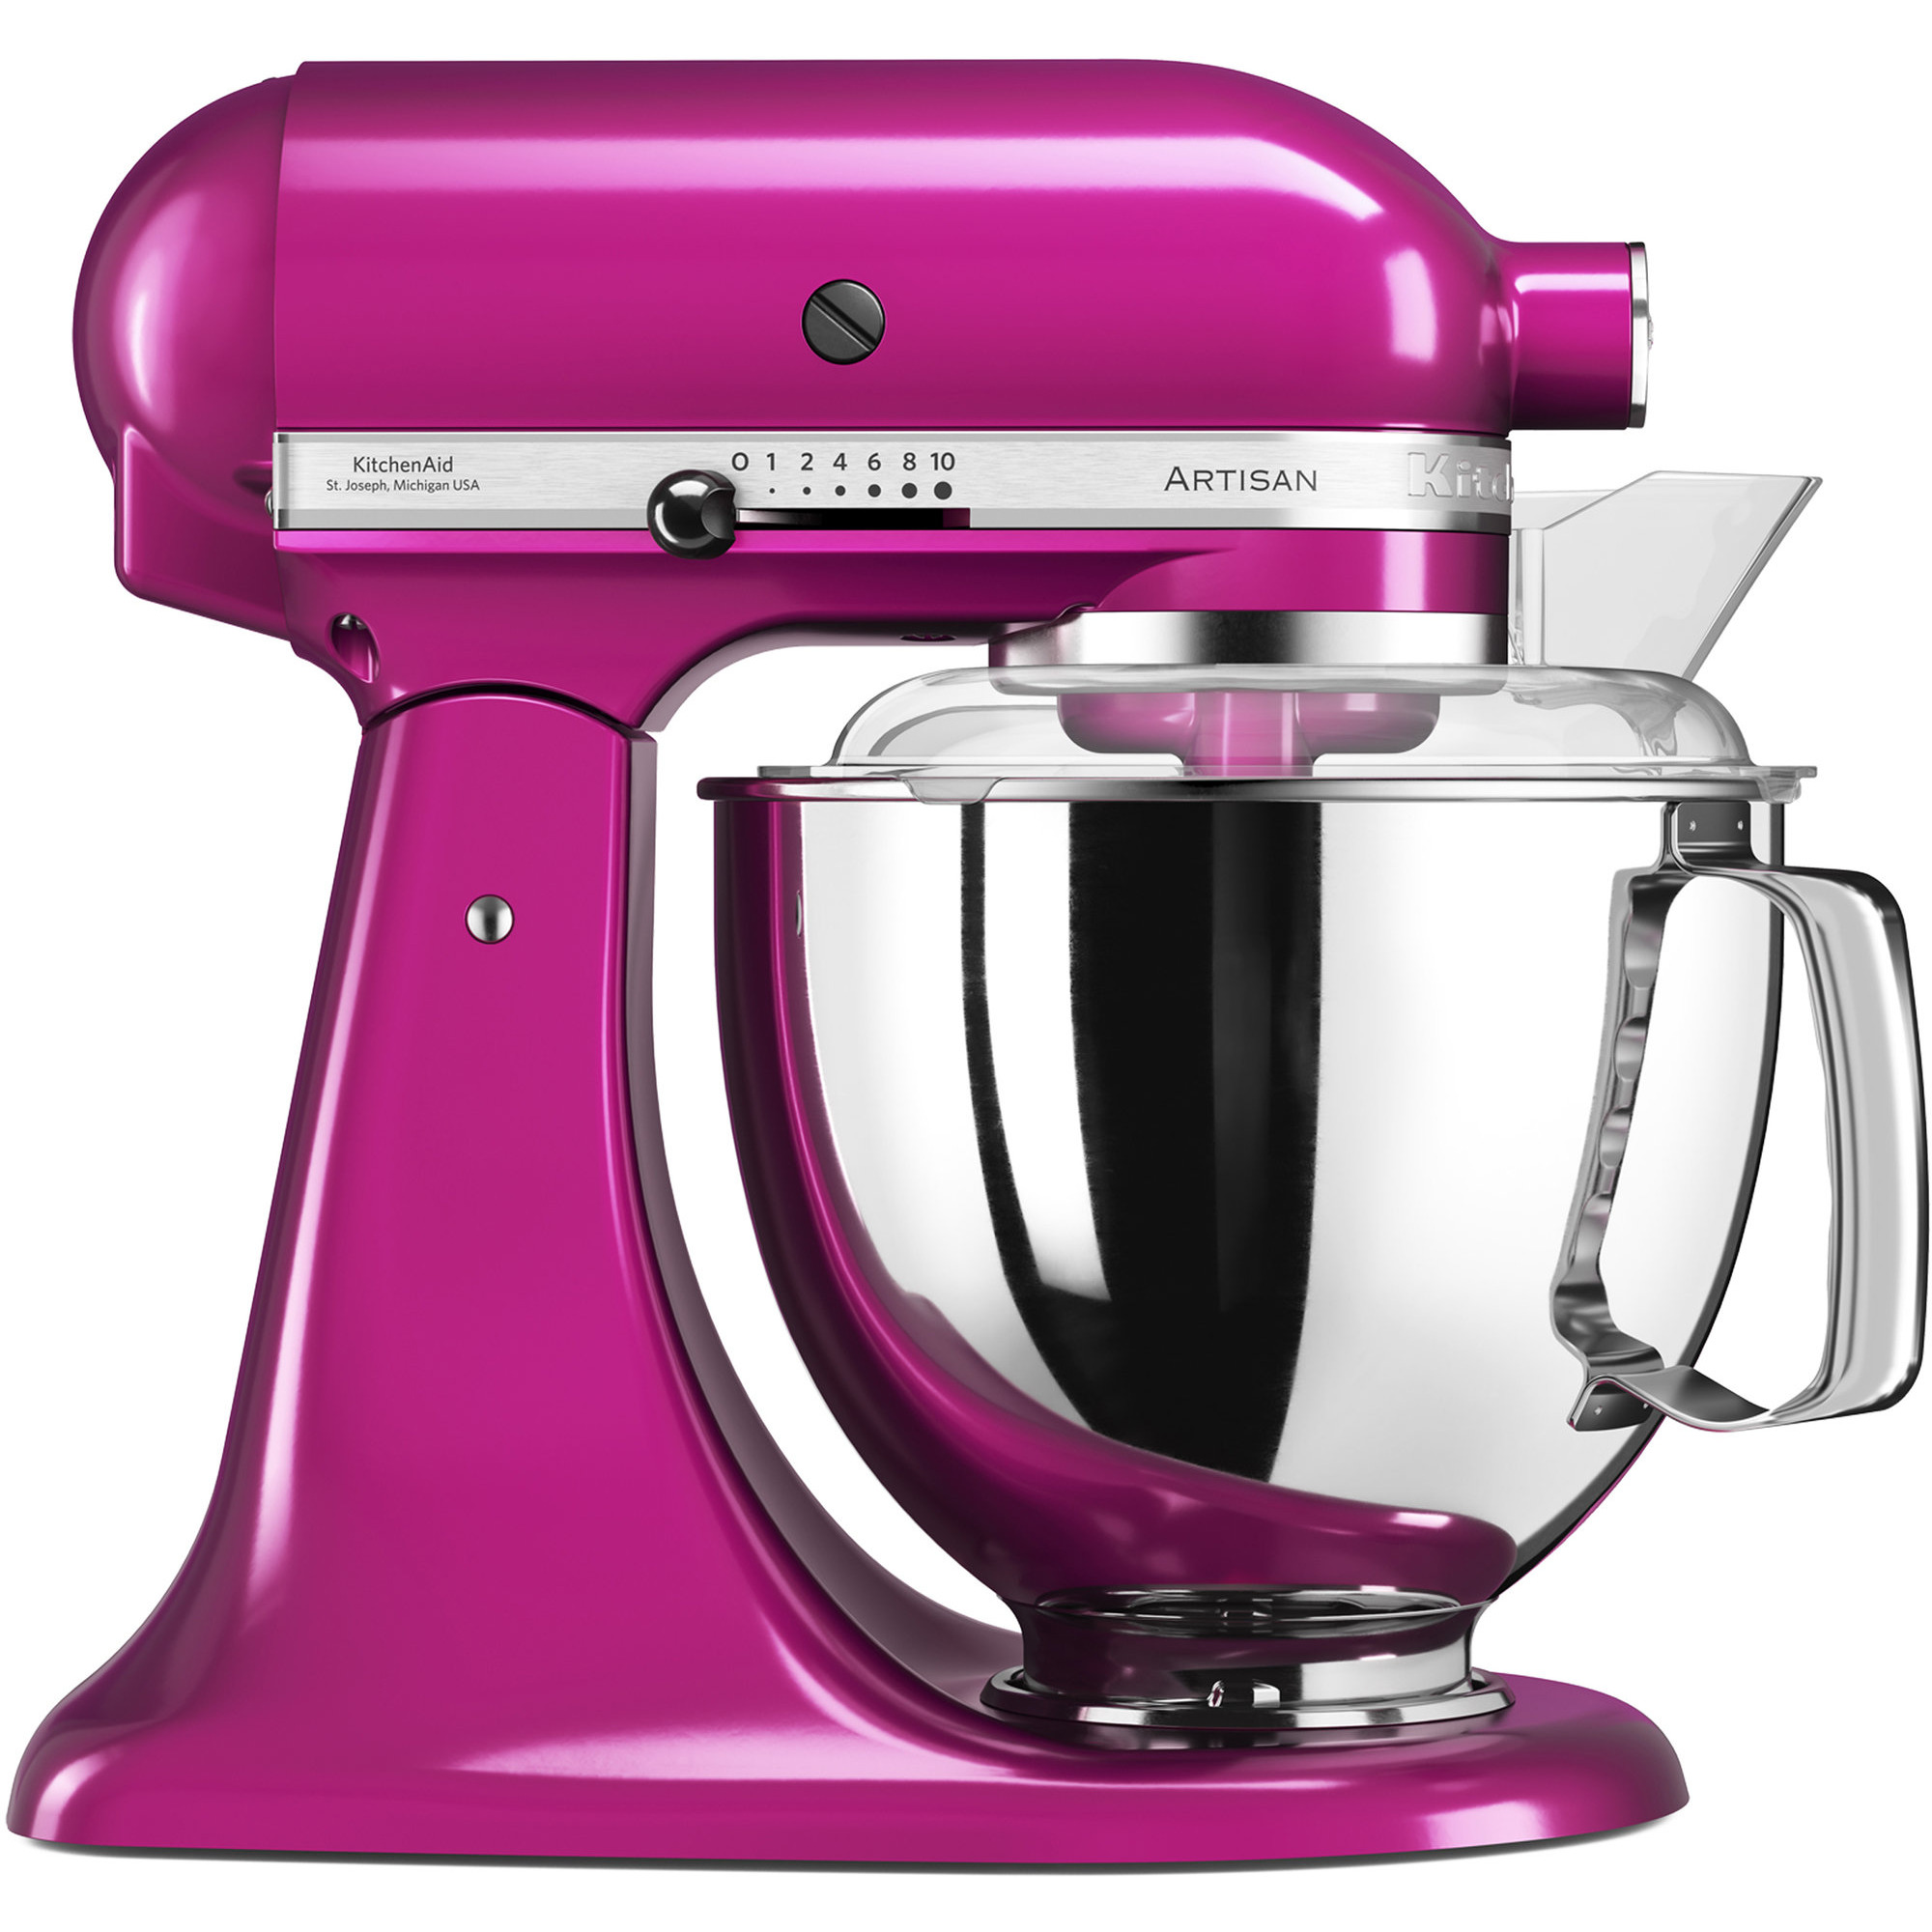 KitchenAid Artisan KSM175PSERI Hallon